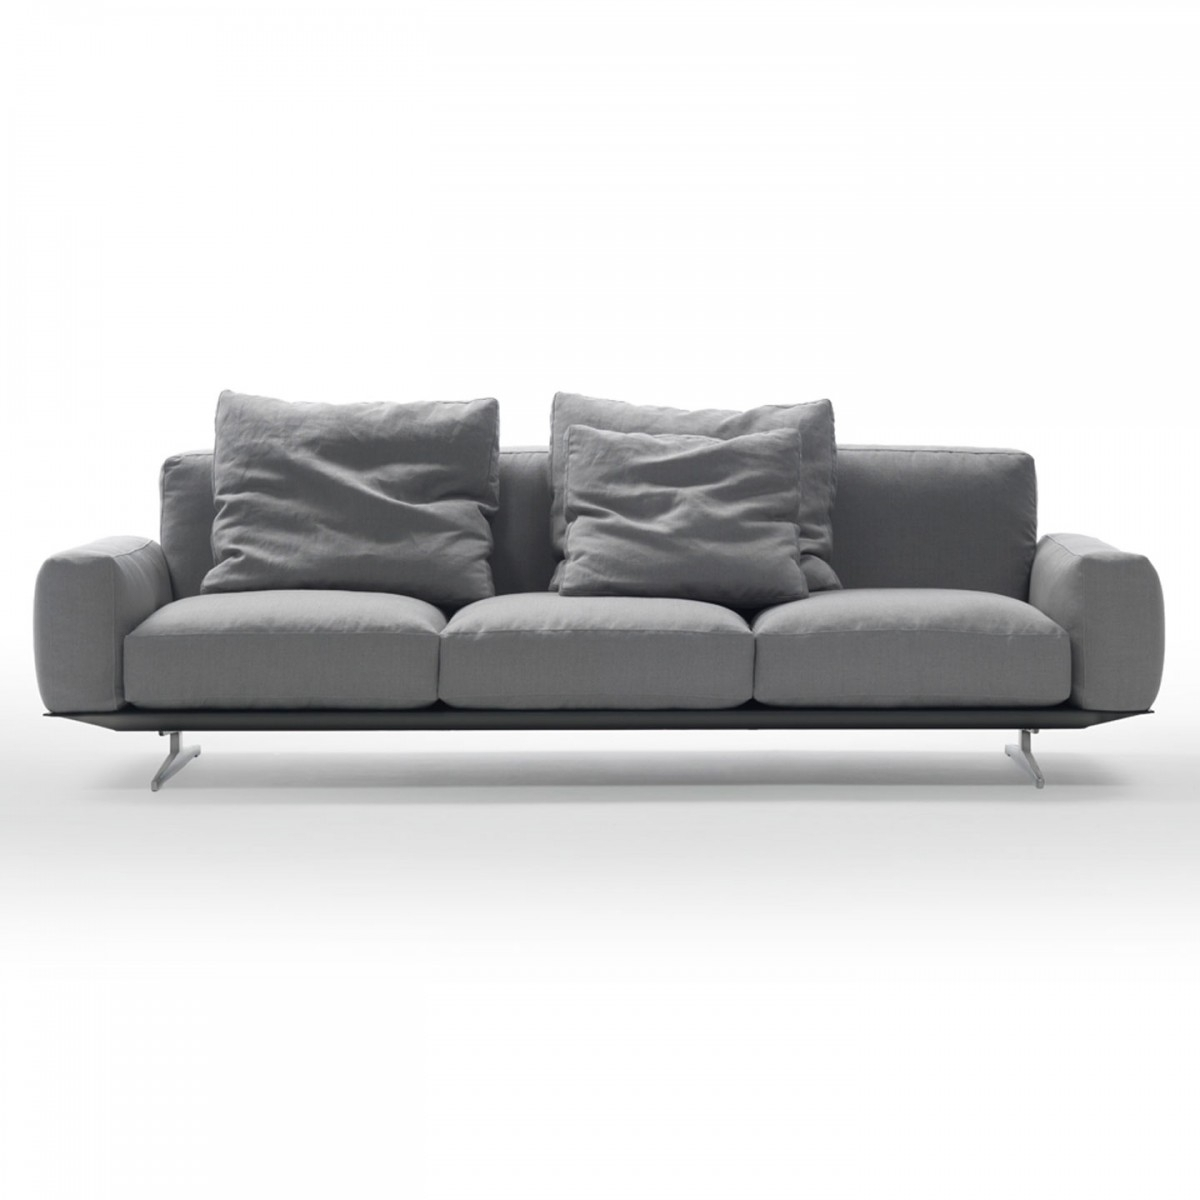 Dream Low Arm 233Cm Sofa Throughout Low Sofas (Image 1 of 10)